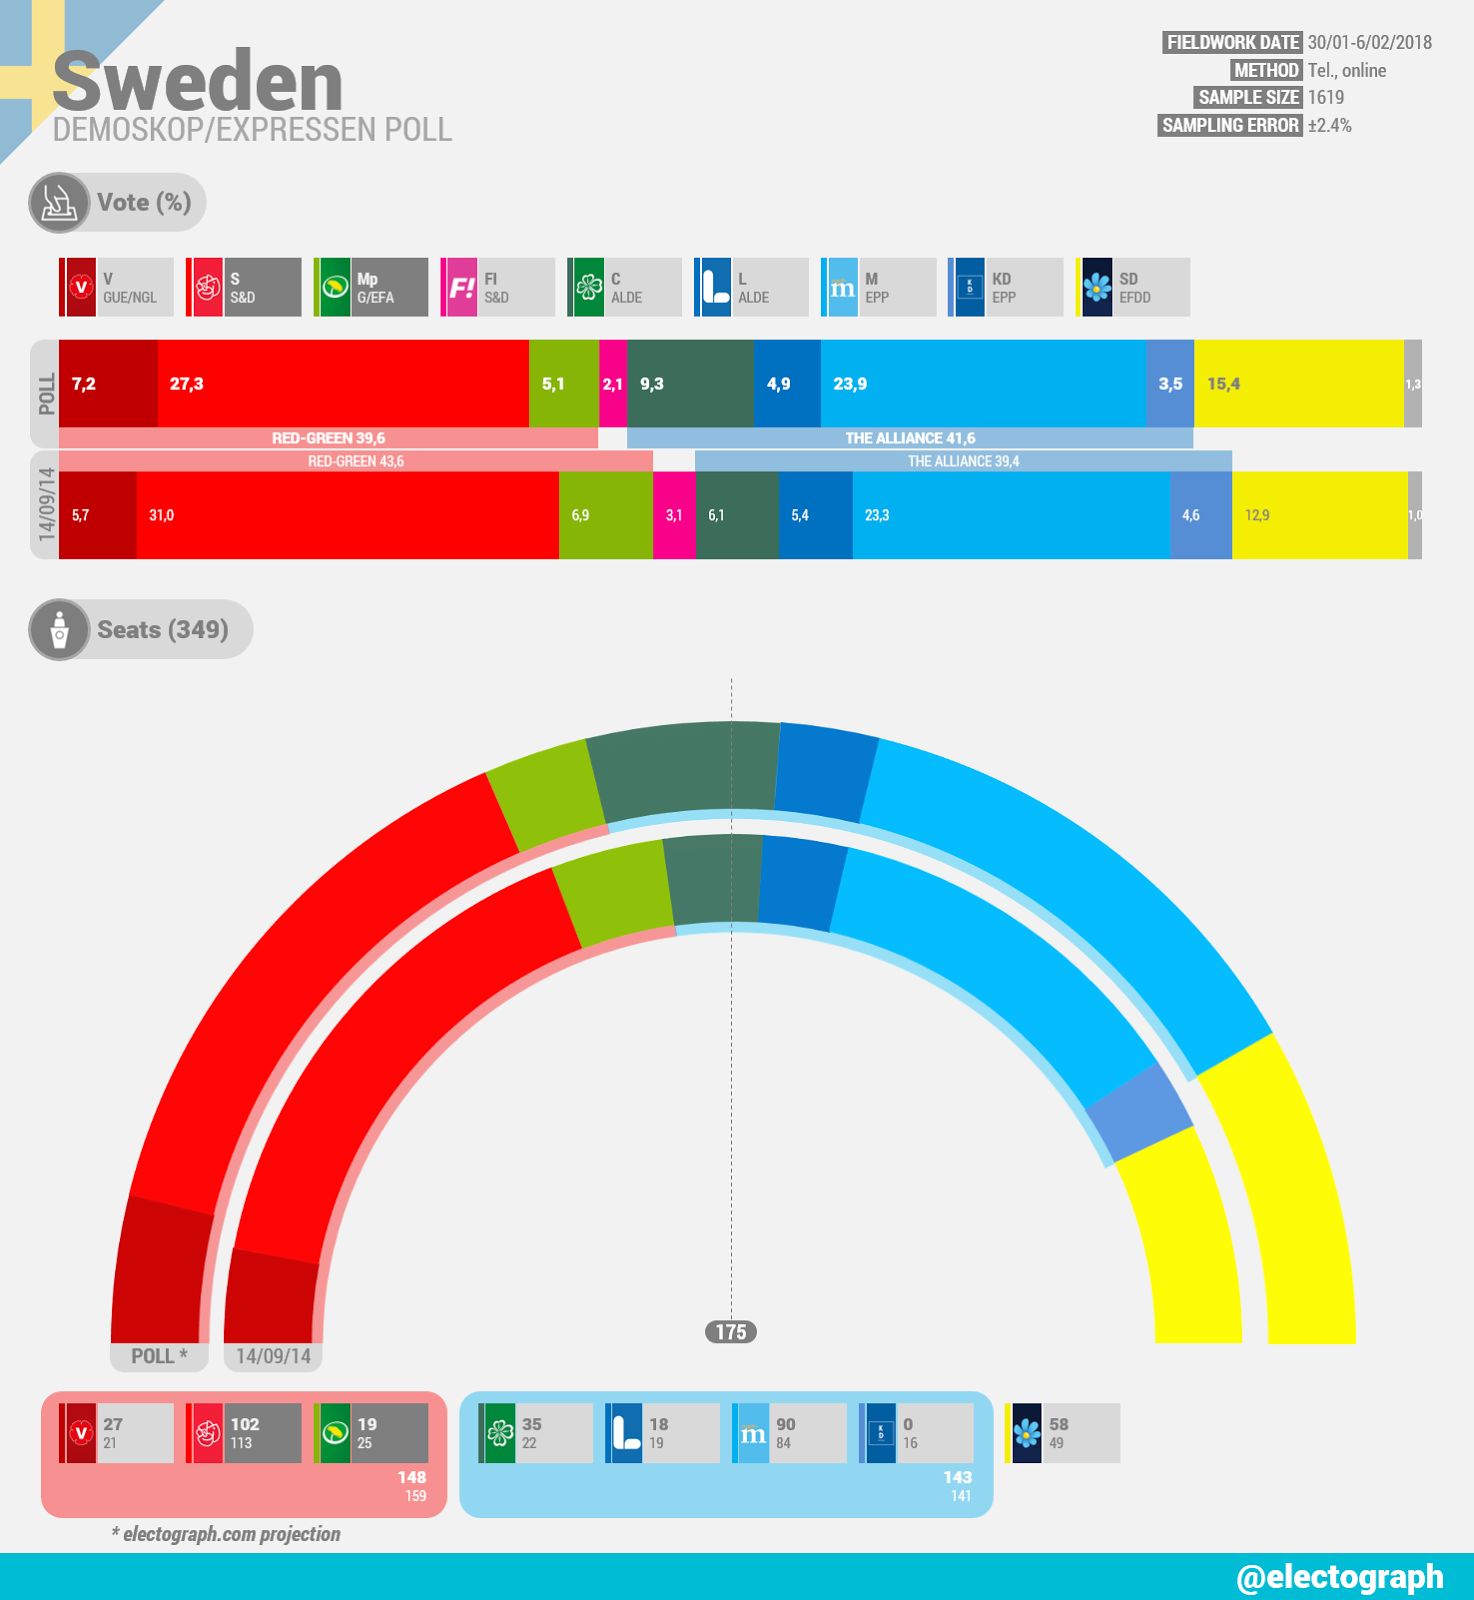 SWEDEN Demoskop poll chart for Expressen, February 2018